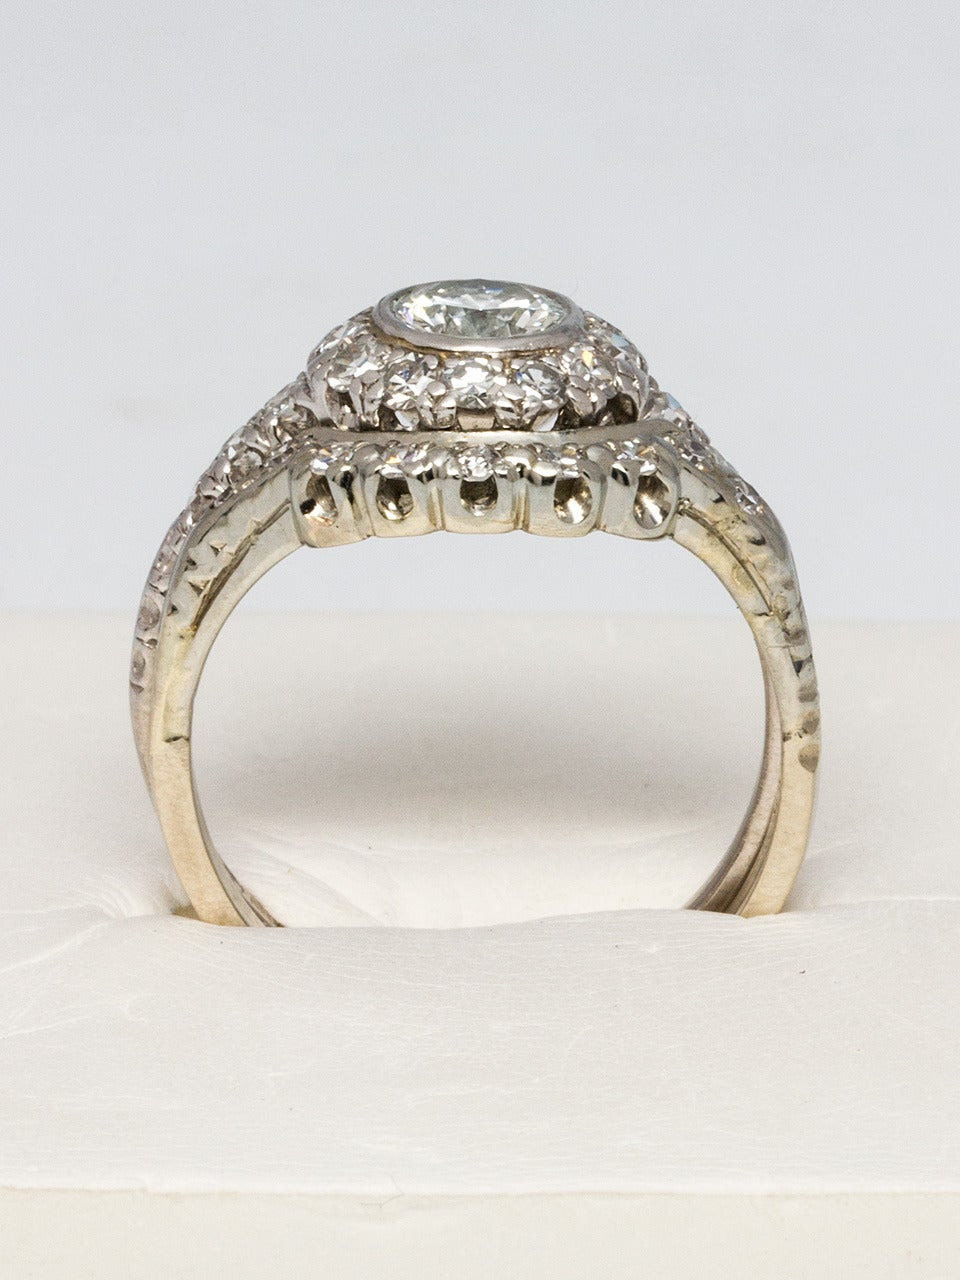 1960s Diamond Platinum Gold Wedding Ring Set For Sale at 1stdibs